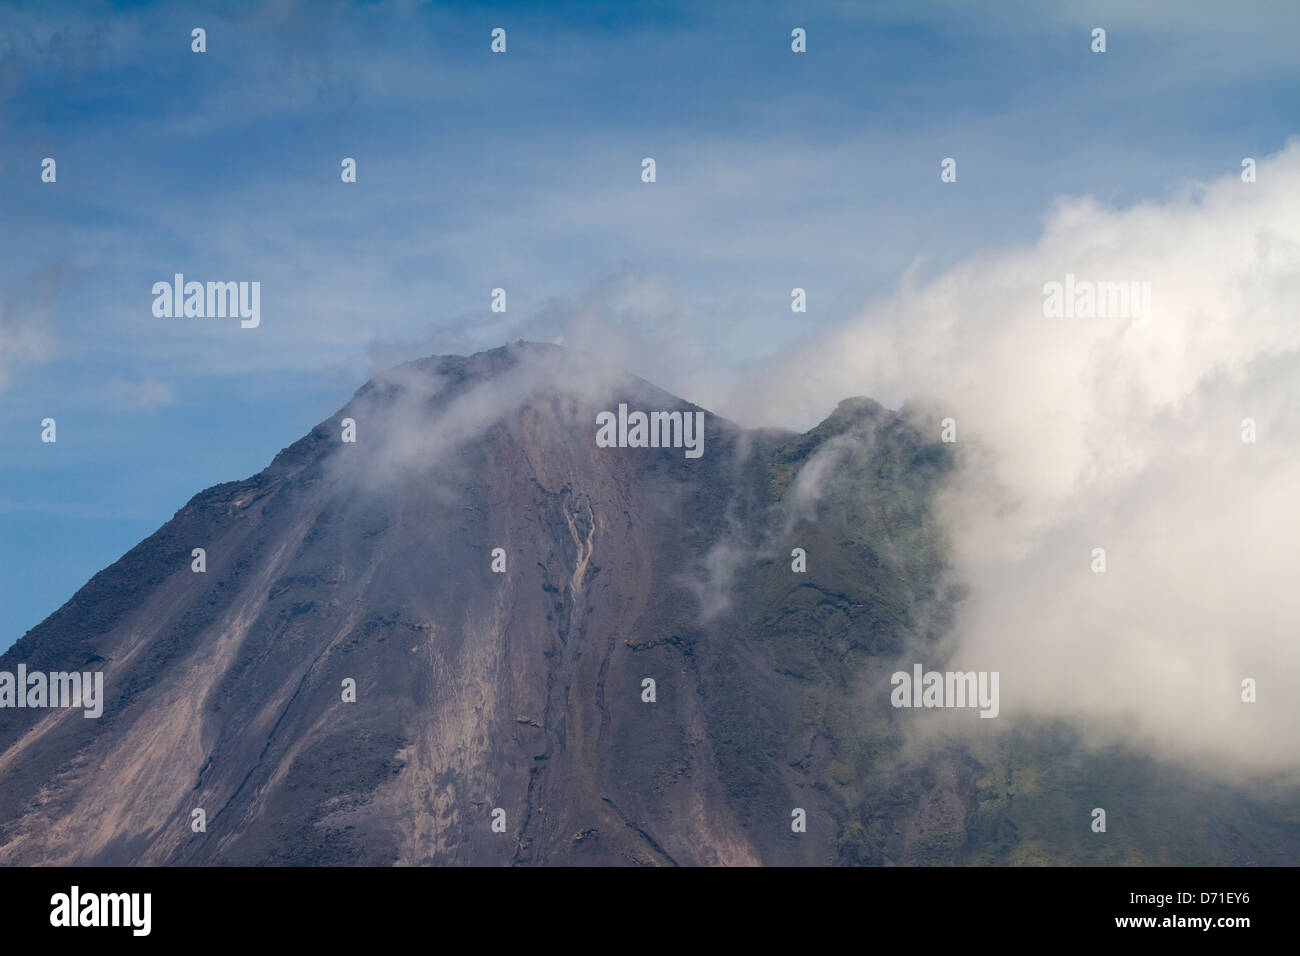 The summit of Arenal Volcano, Arenal Volcano National Park, Costa Rica - Stock Image